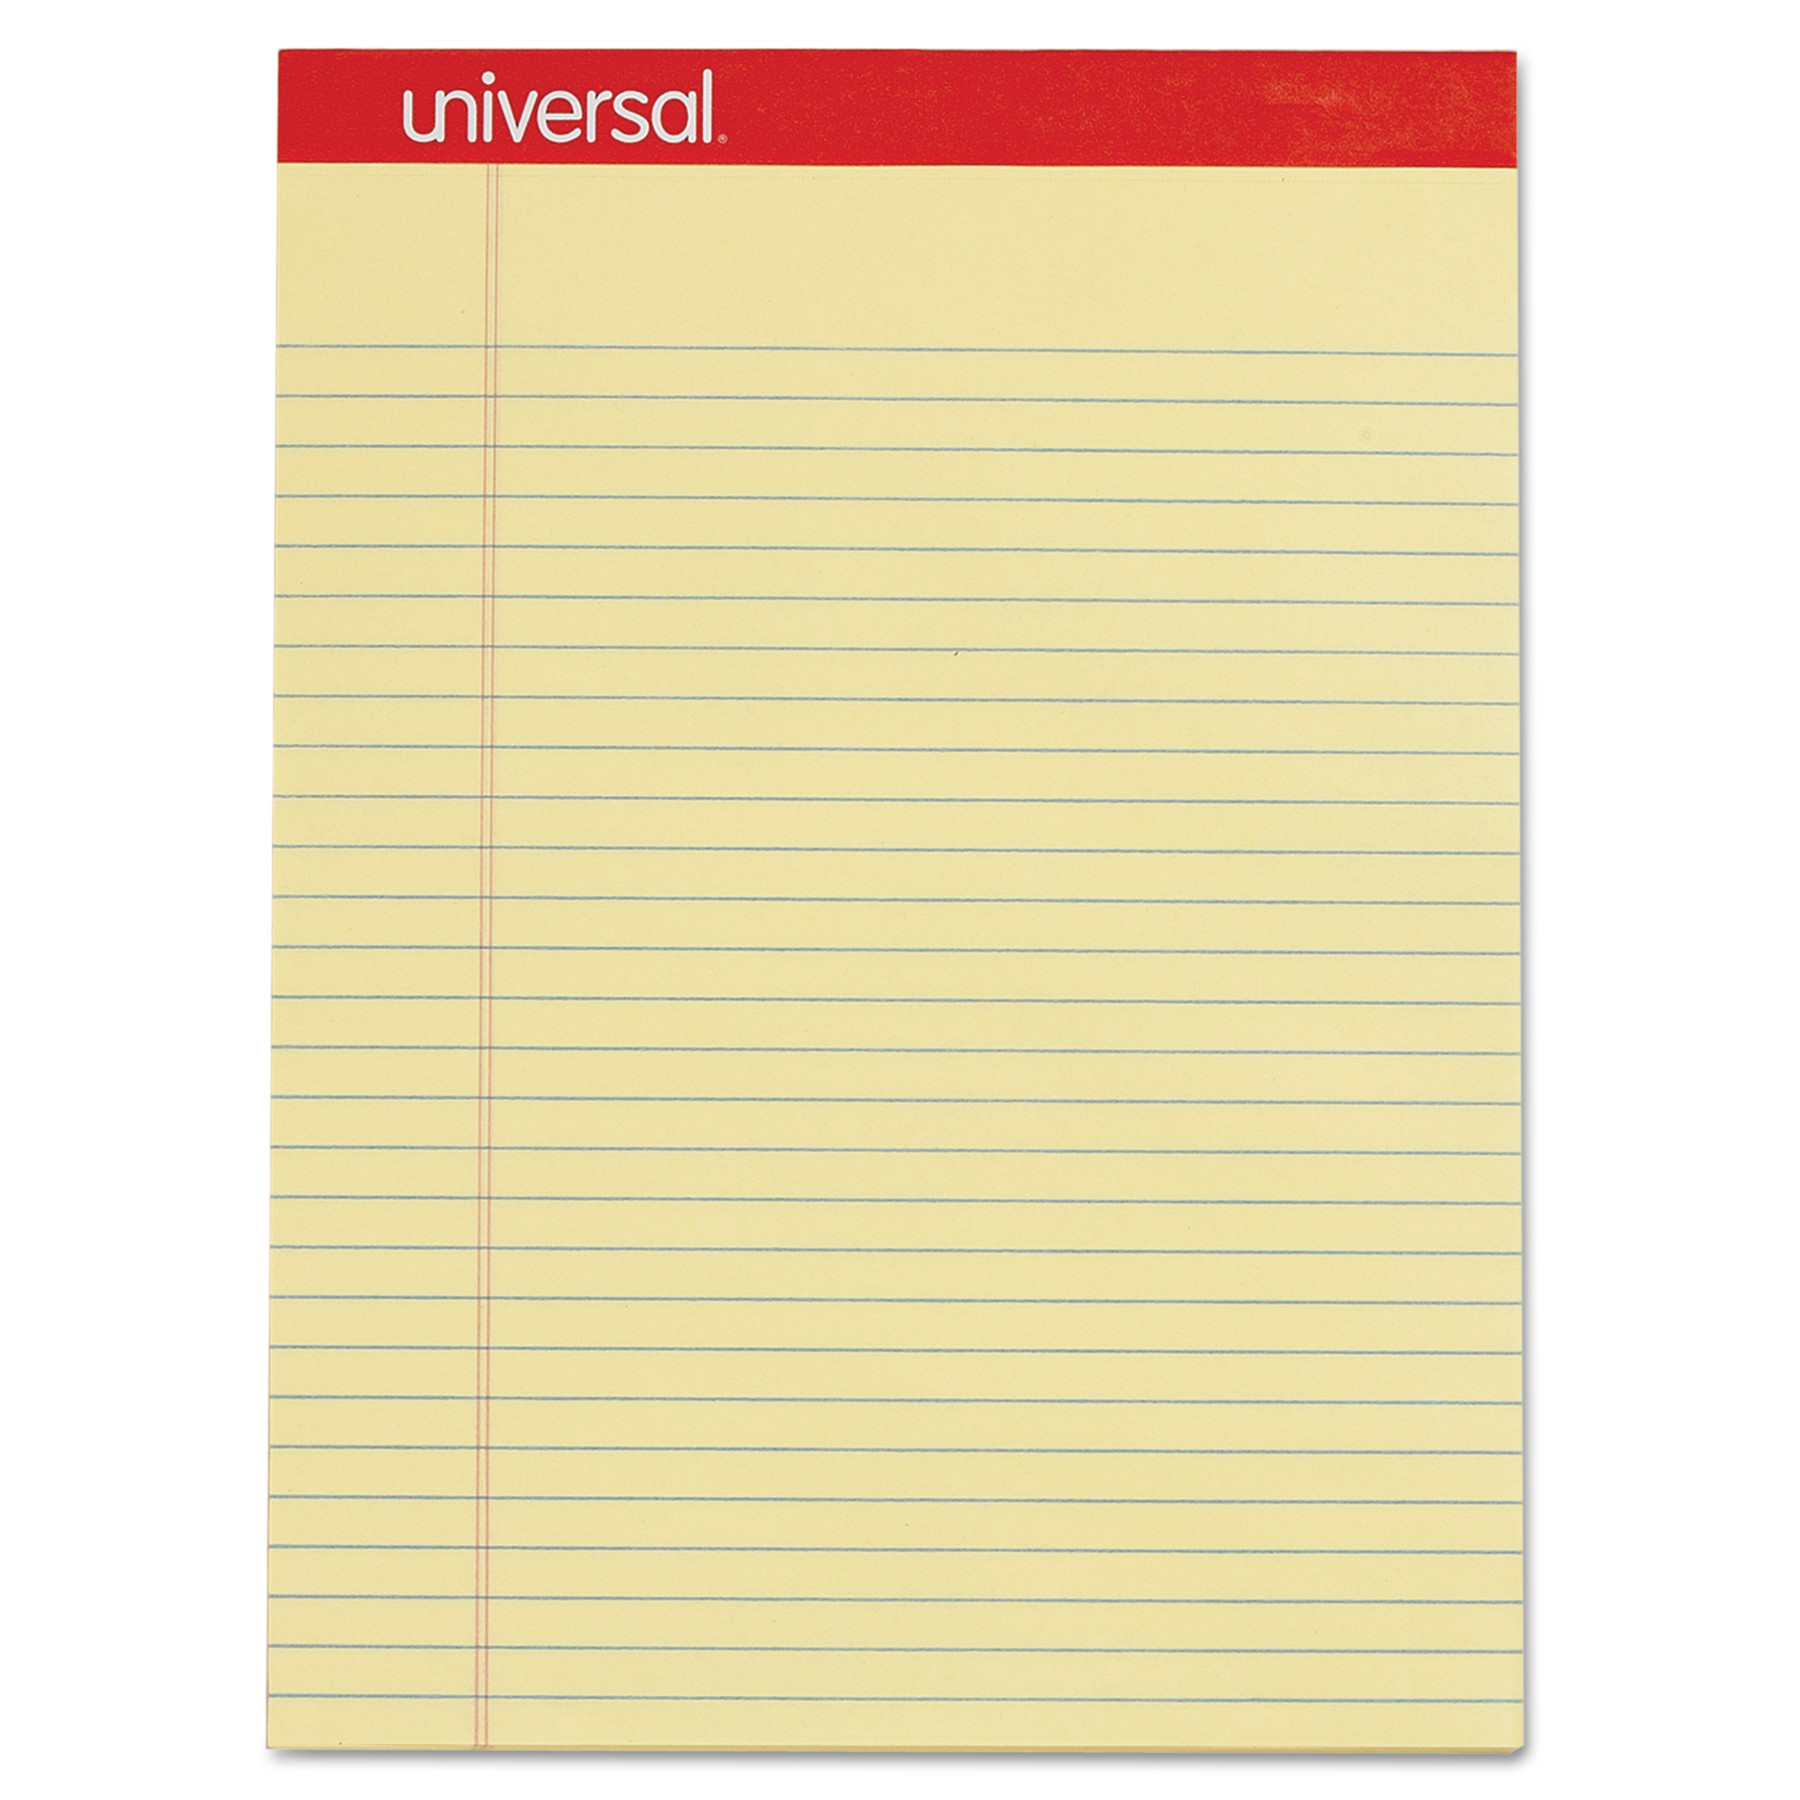 Universal Perforated Ruled Writing Pad, Legal/Margin Rule, Letter, Canary, 50 Sheet, Dozen -UNV10630